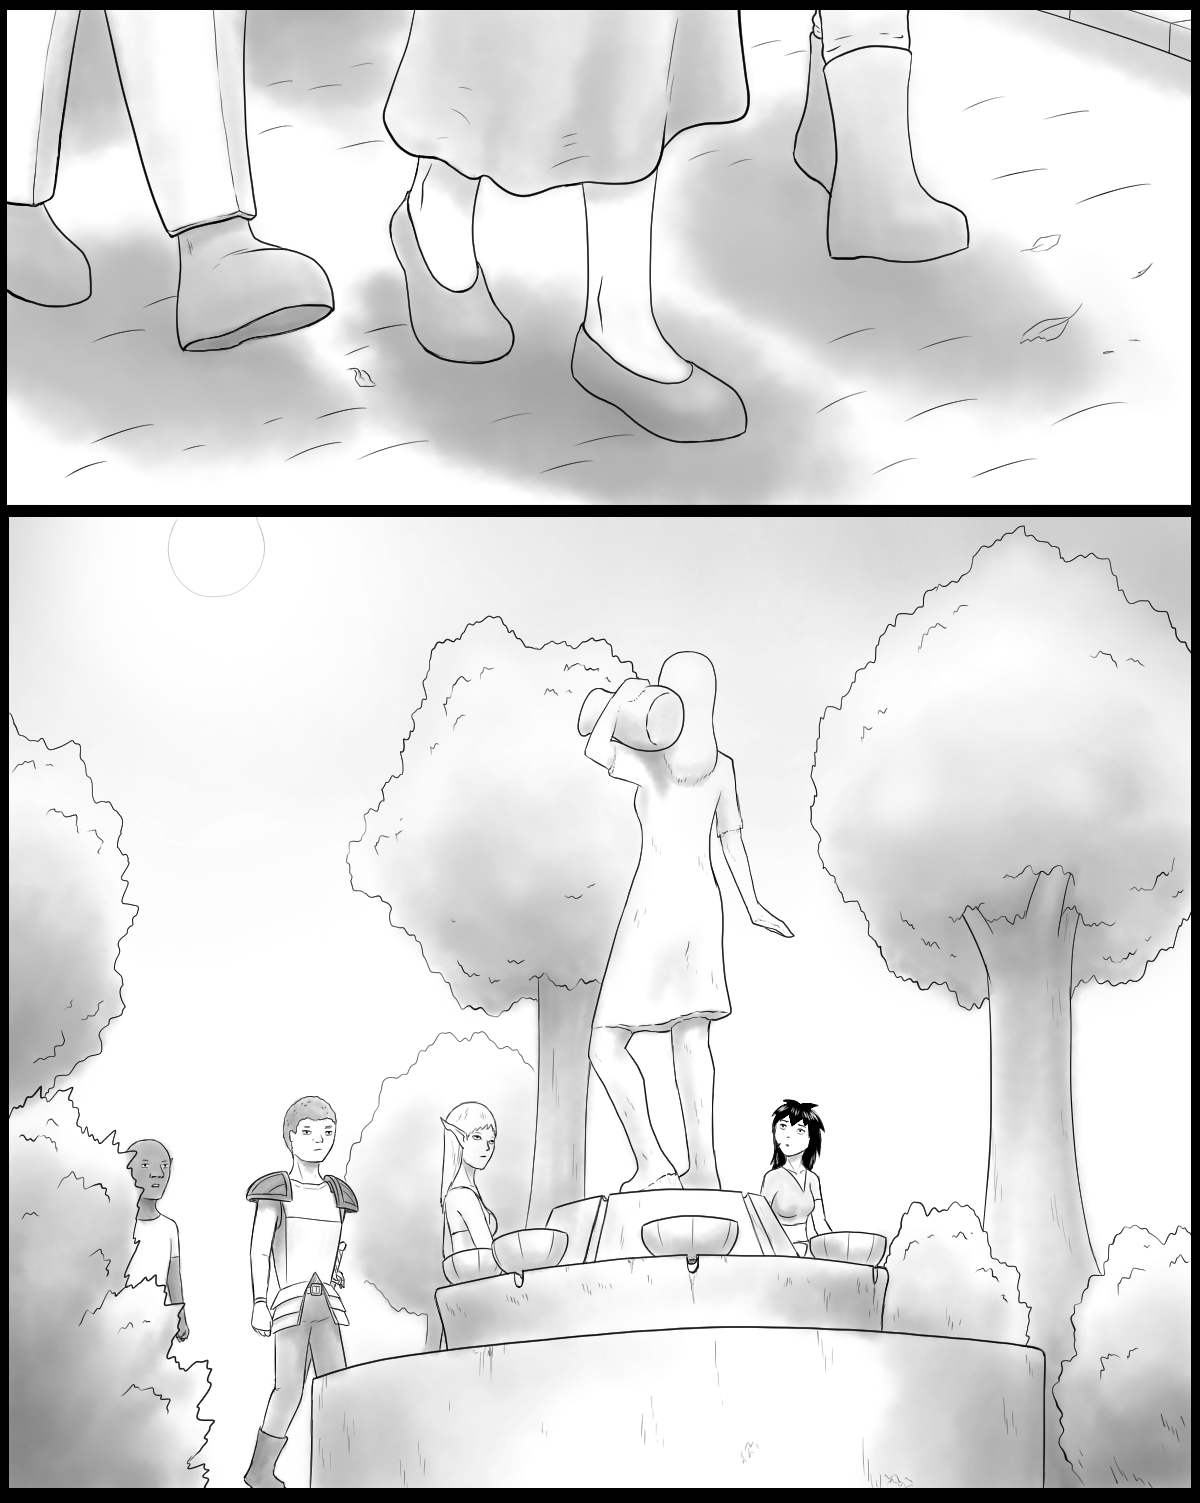 Page 75 - The fountain